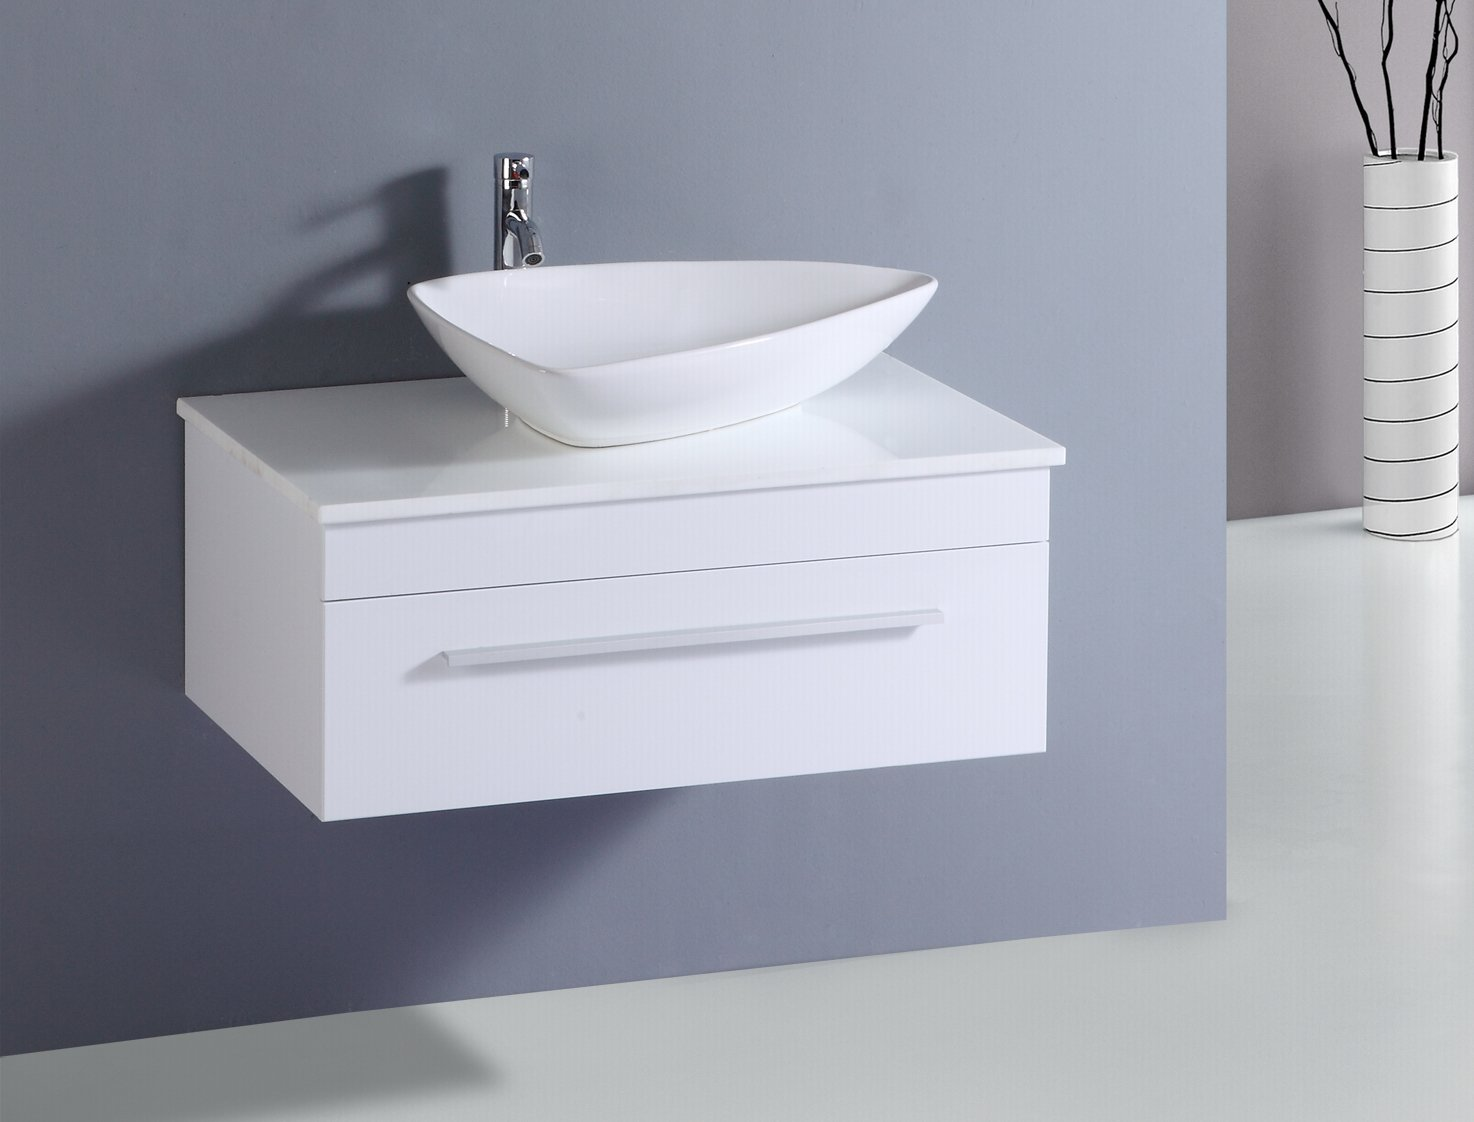 Nice Designer Wall Hung Bathroom Vanity Unit Gloss White Ceramic Counter Top  Basin (Gloss White): Amazon.co.uk: Kitchen U0026 Home